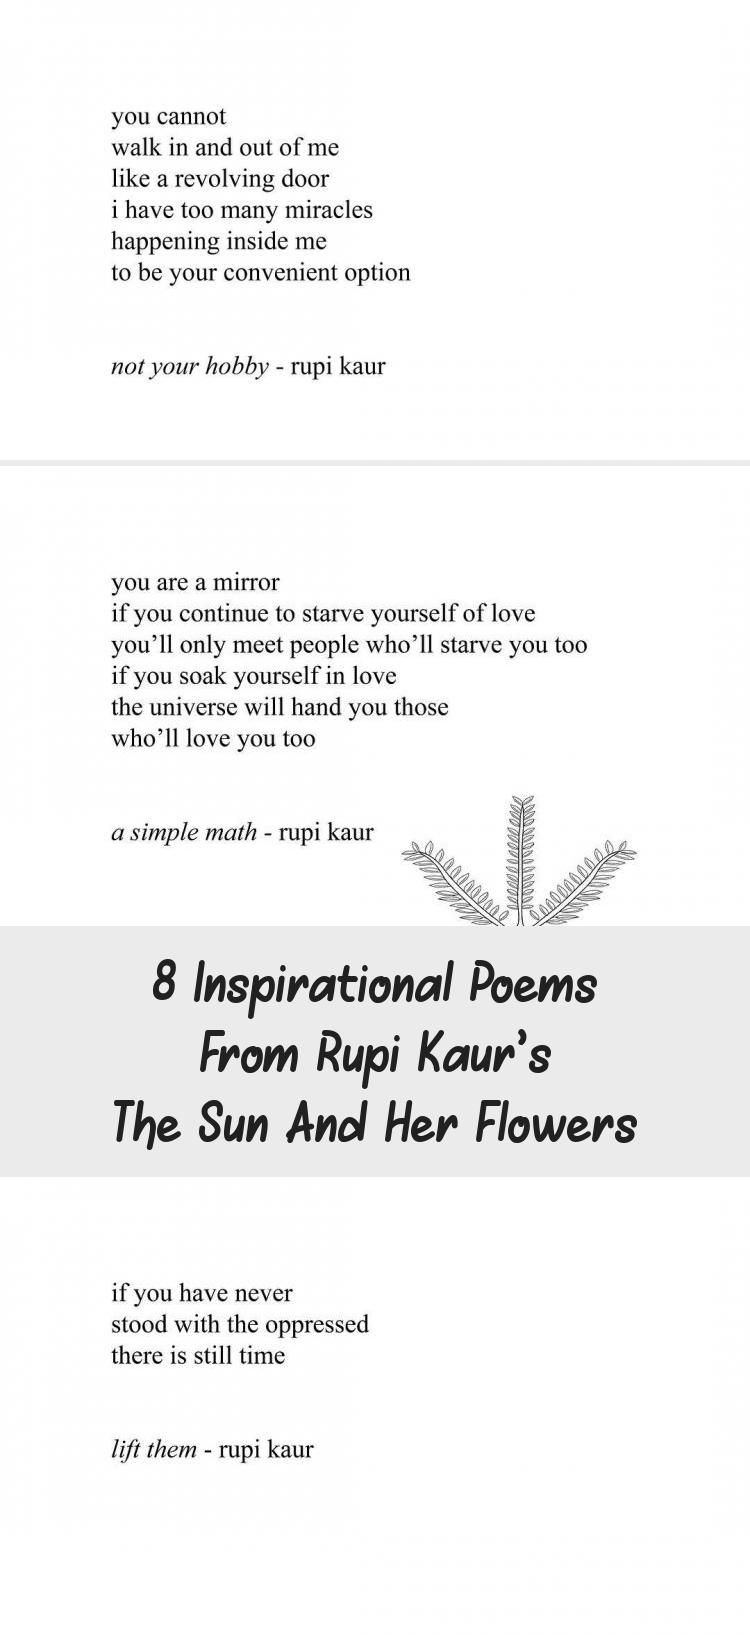 8 Inspirational Poems From Rupi Kaur's The Sun And Her ...